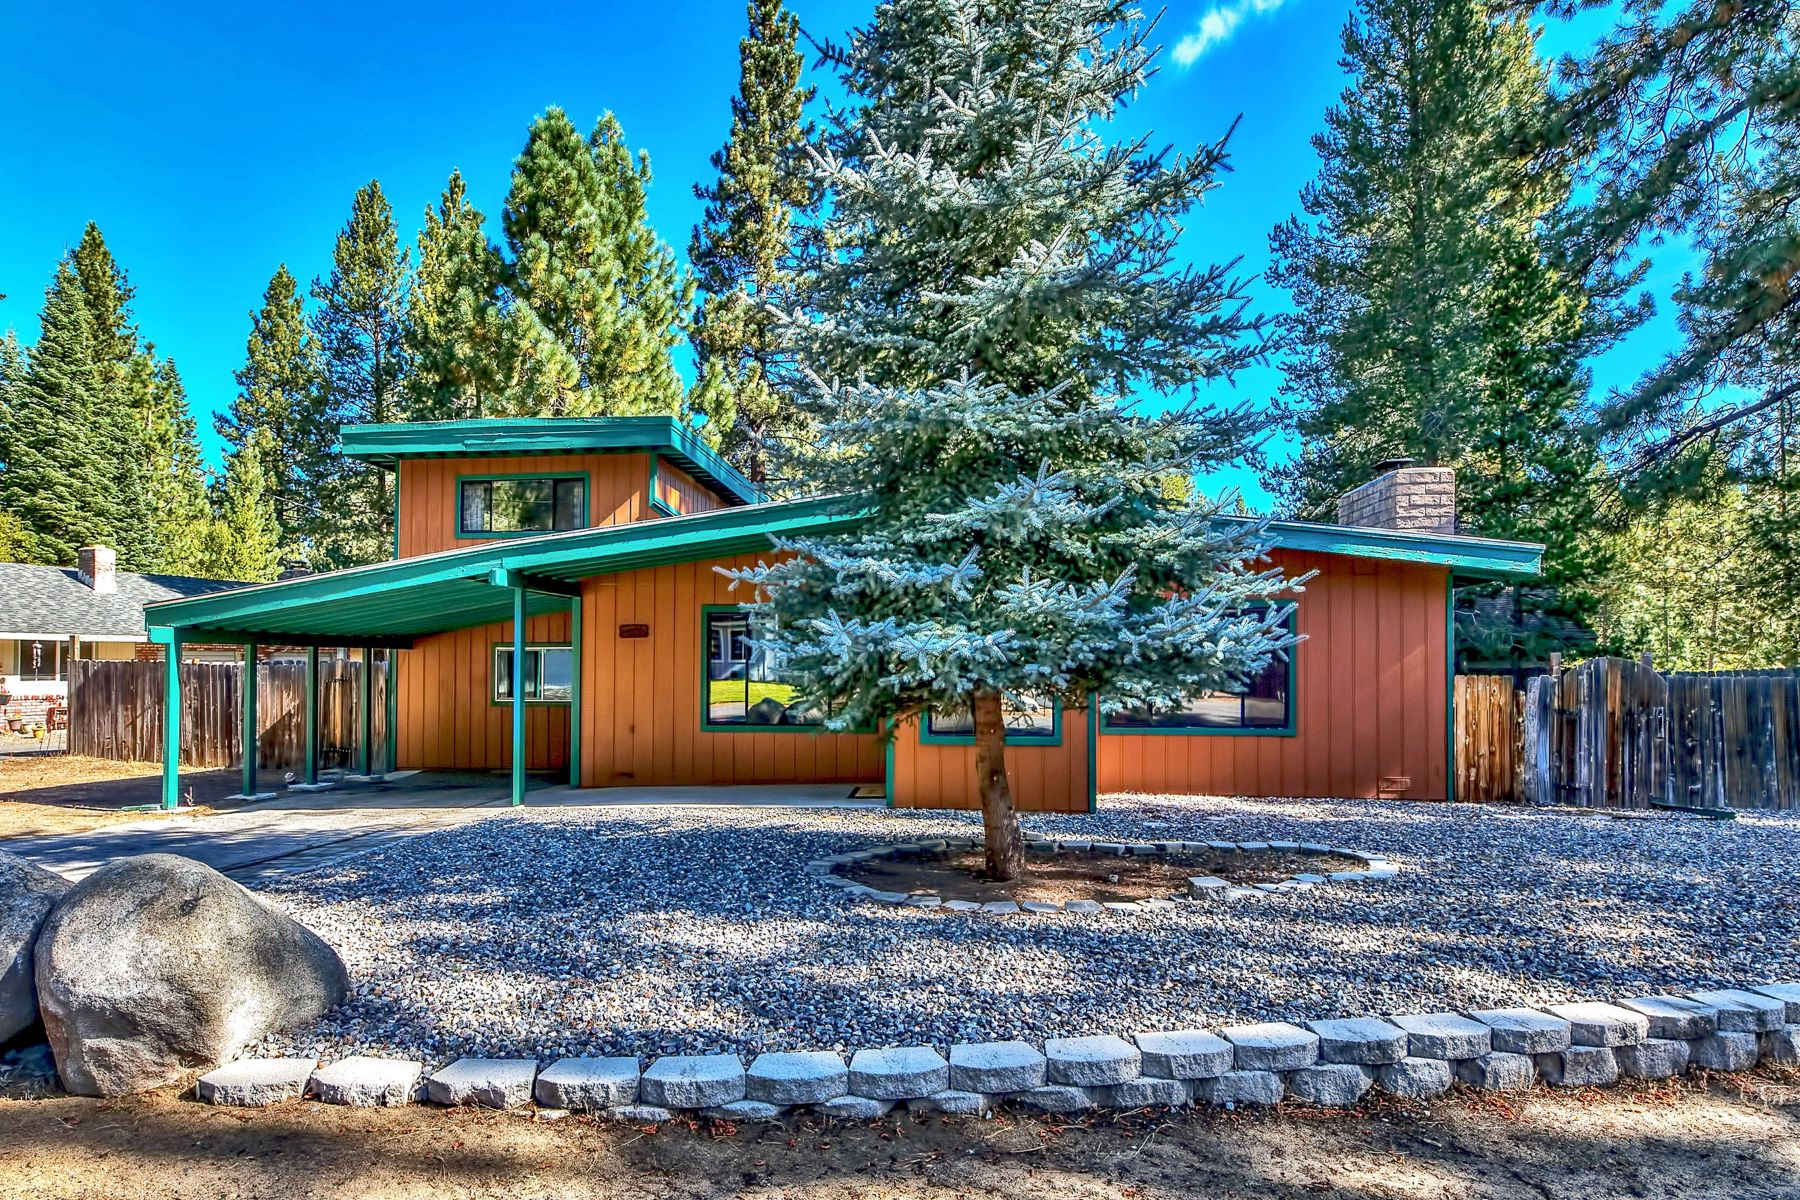 Property for Active at 817 Hazel Drive, South Lake Tahoe, CA 96150 817 Hazel Drive South Lake Tahoe, California 96150 United States